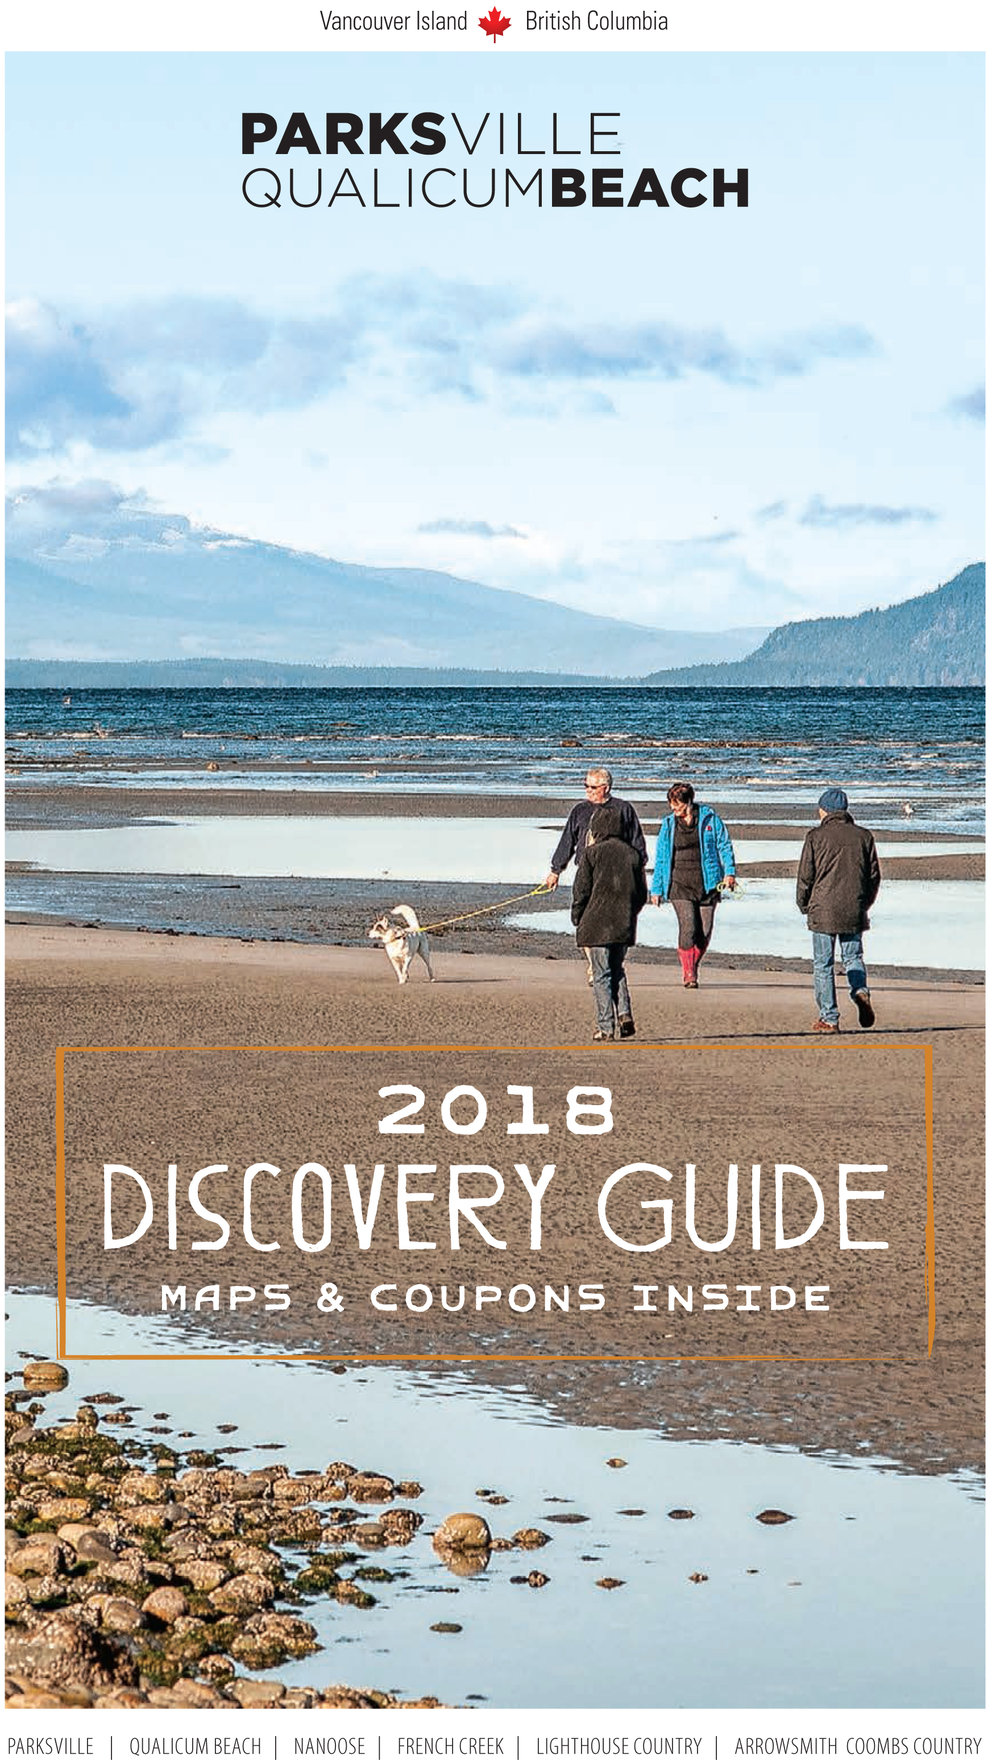 Parksville Qualicum Beach 2018 Discovery Guide.jpg